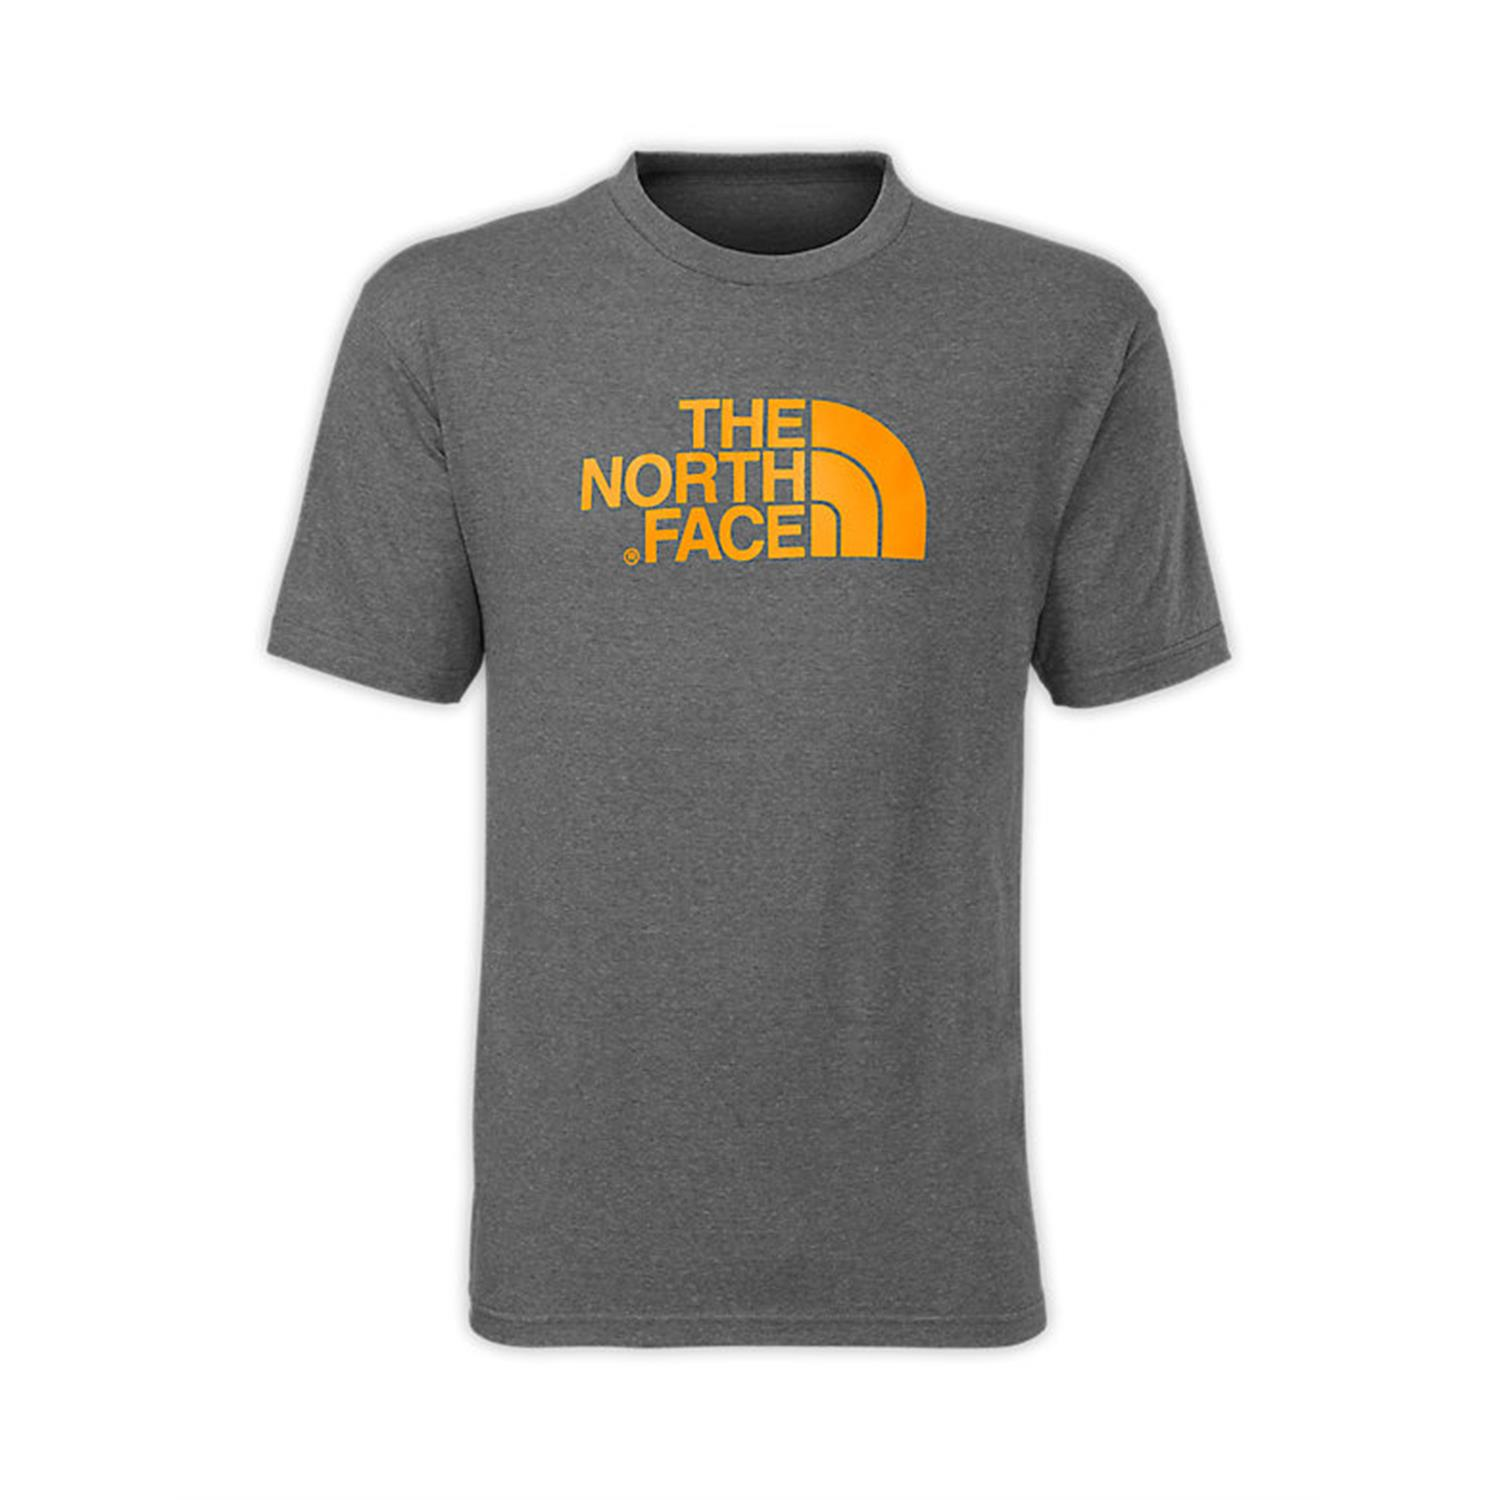 The North Face Half Dome T Shirt Evo Outlet